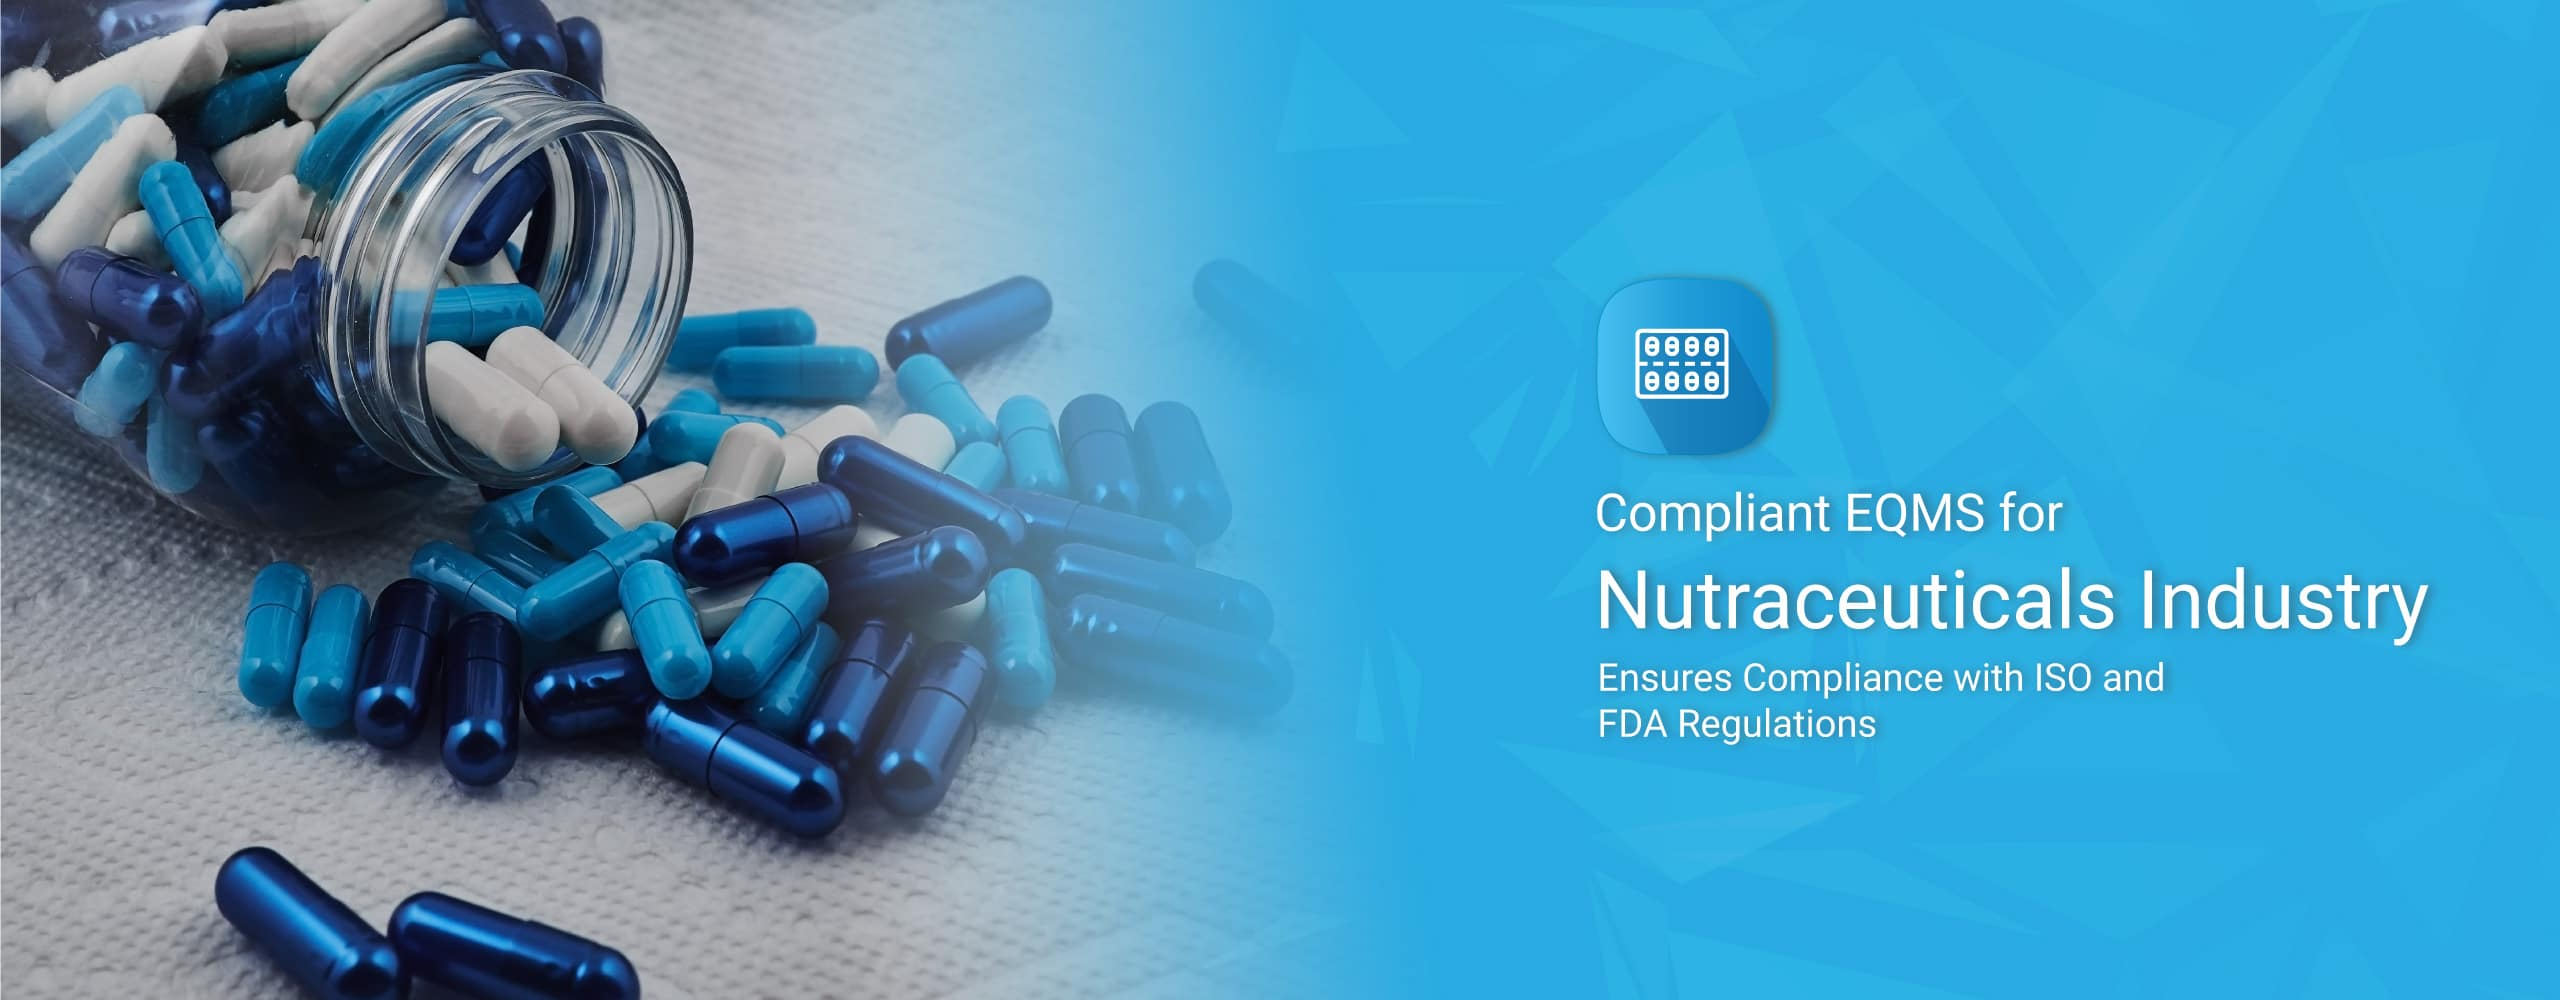 Quality Management System for Nutraceuticals Industry